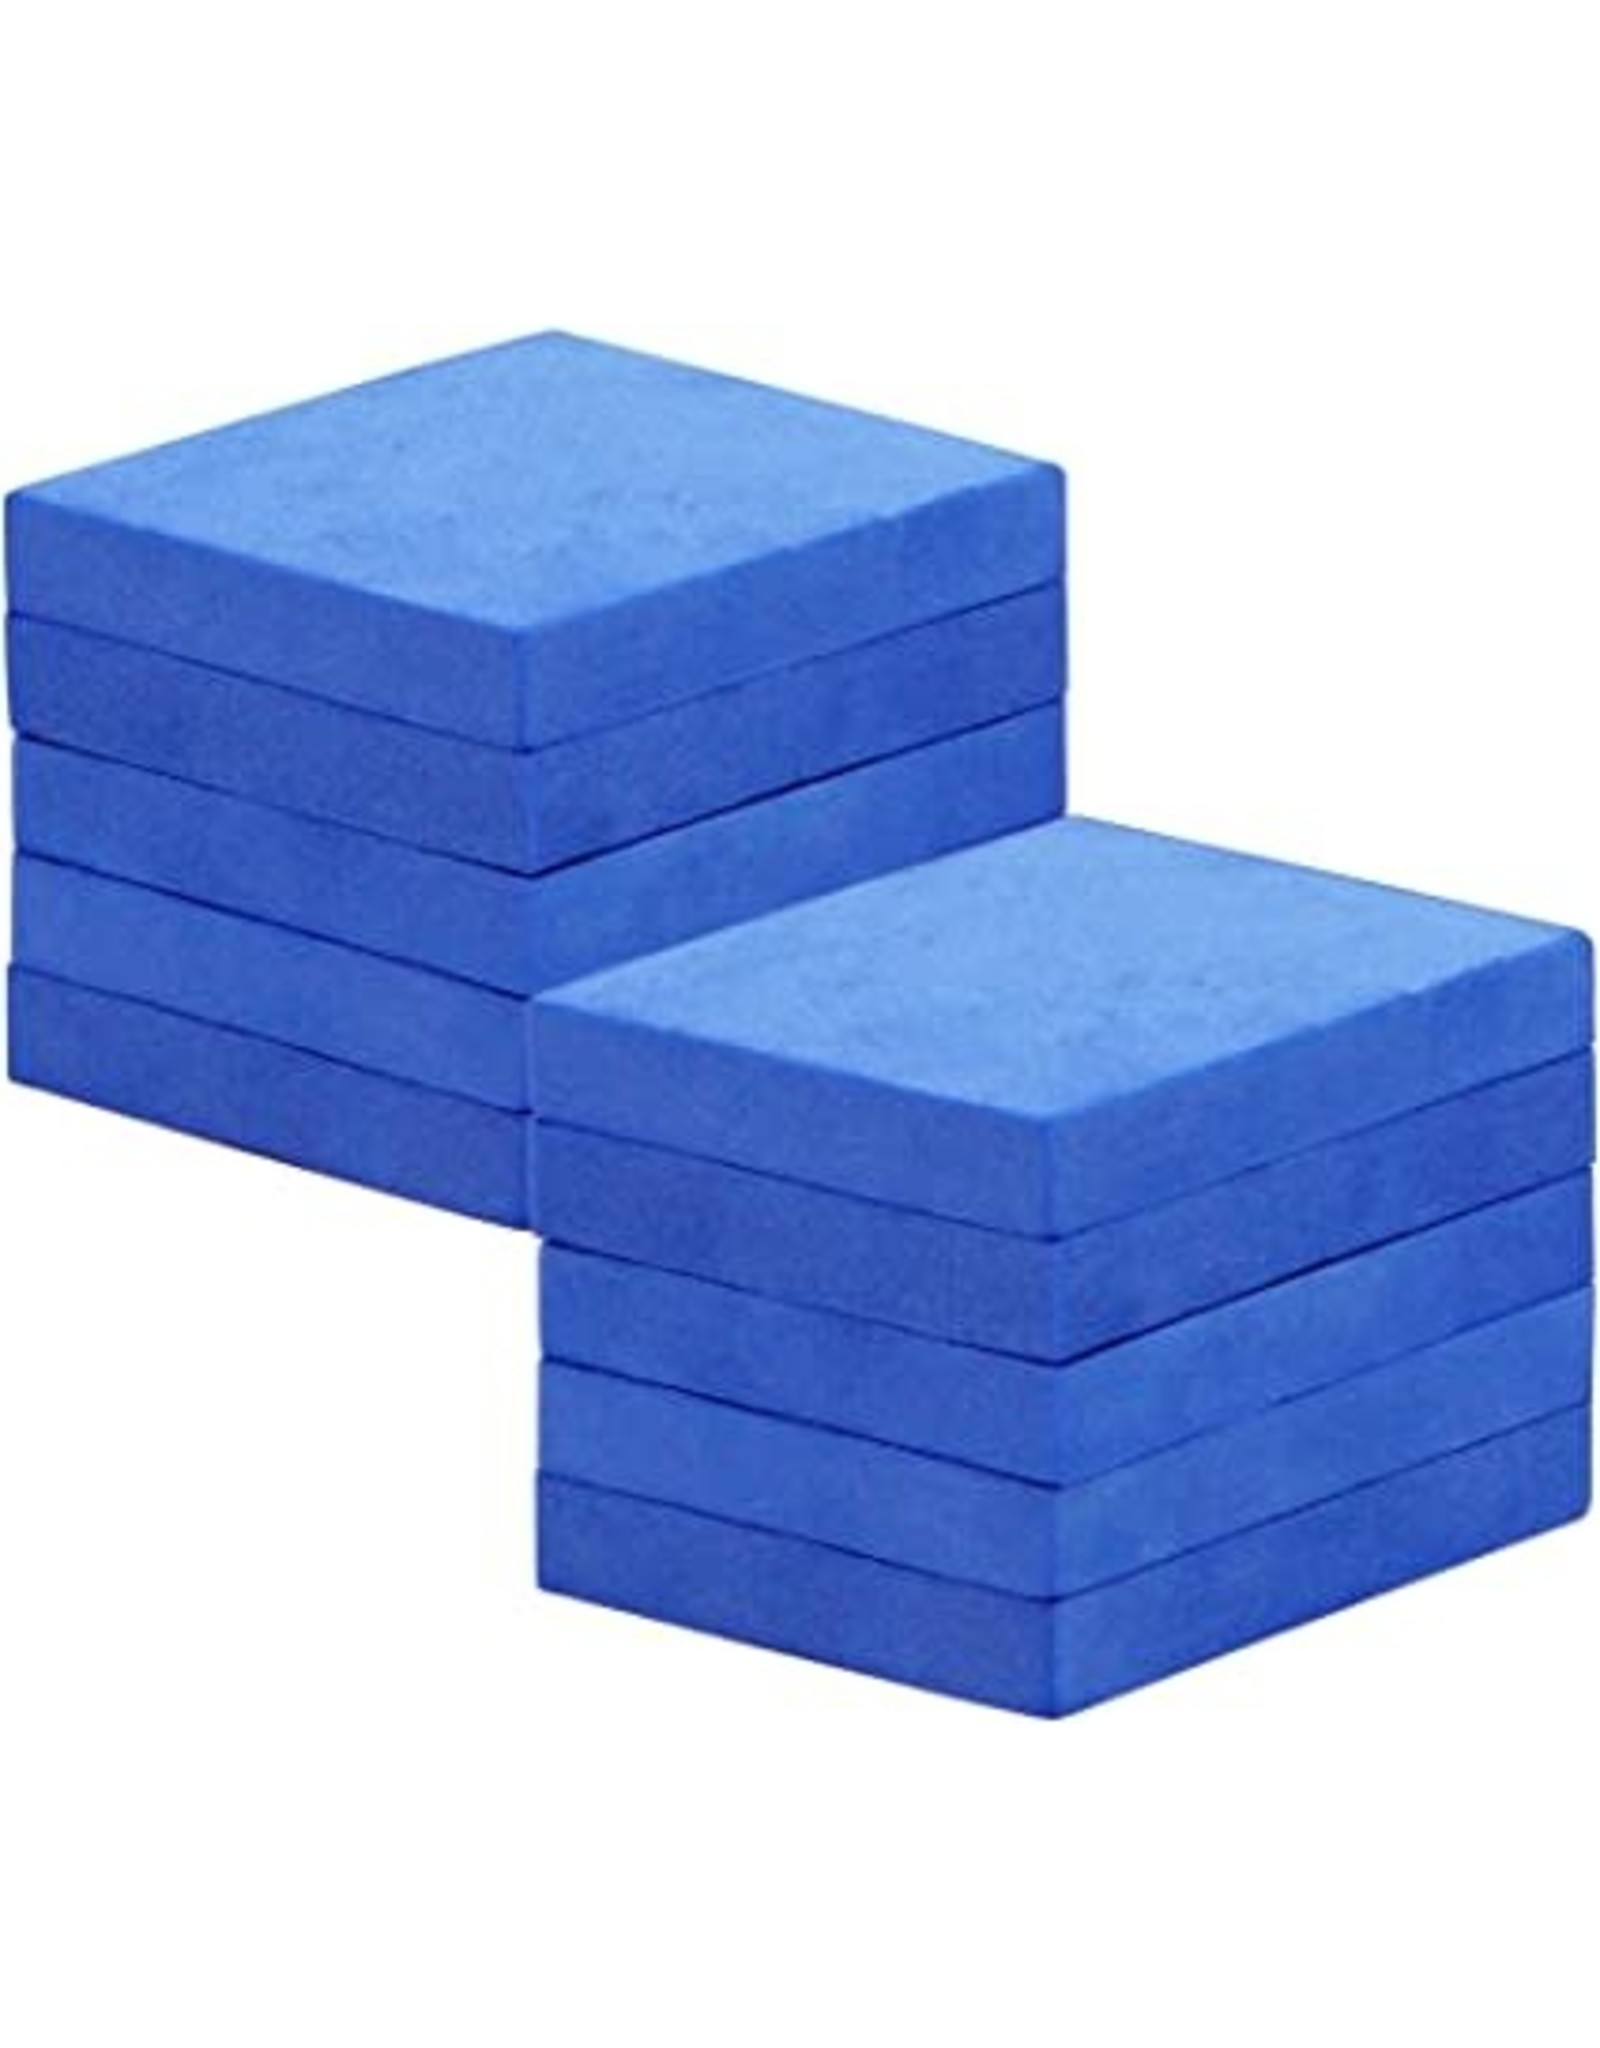 Card Foam Divider: Blue Foam Single